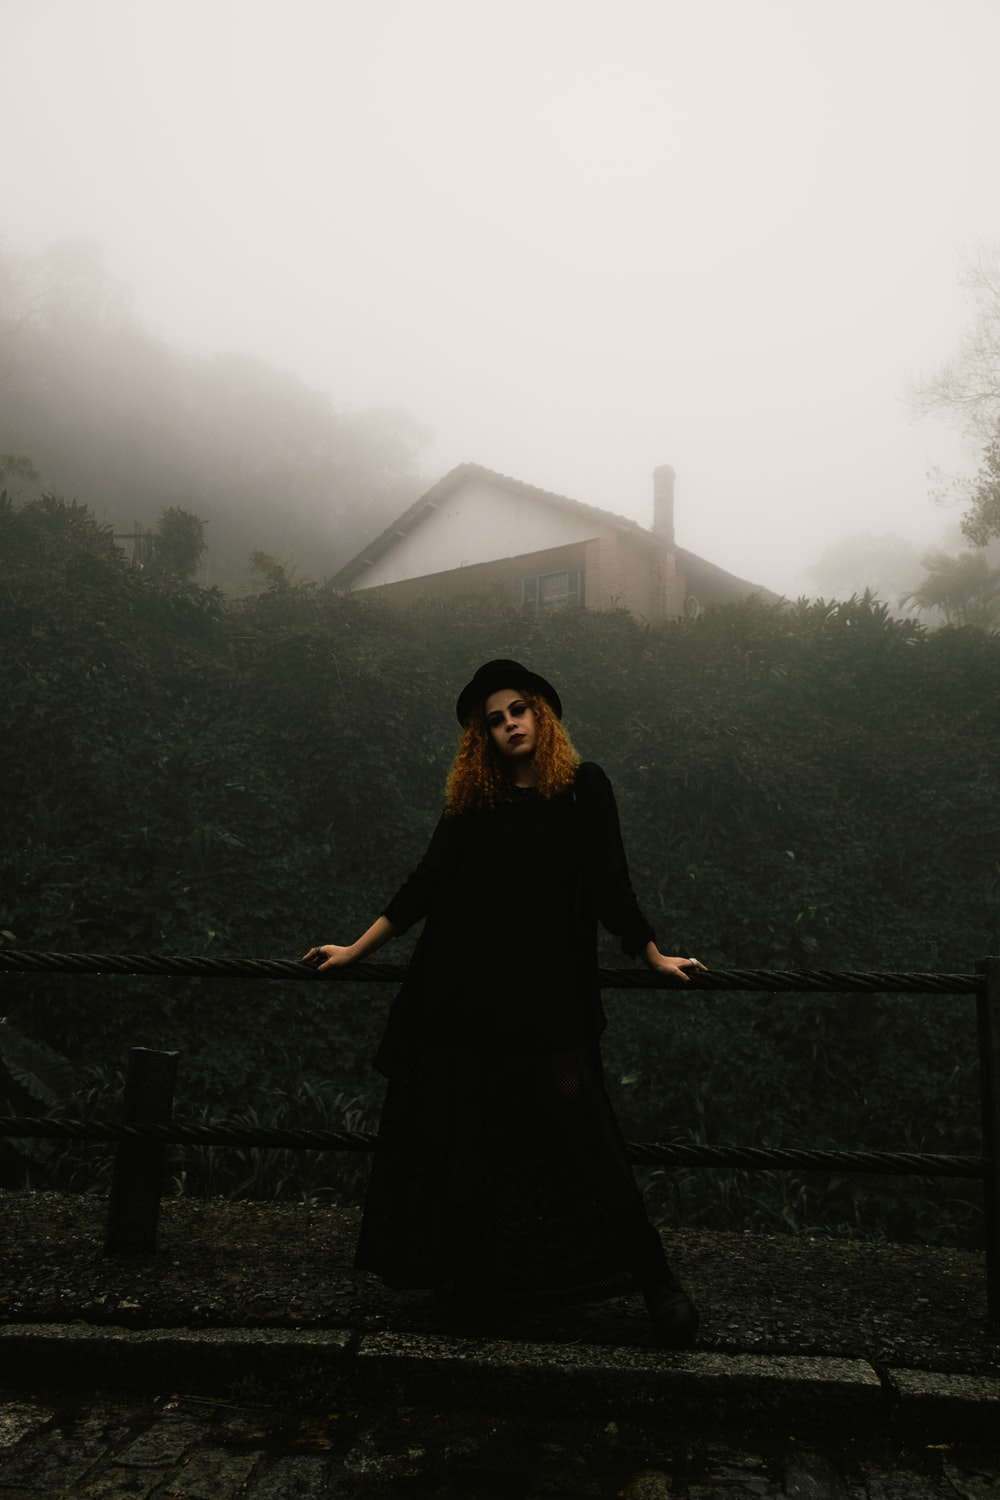 woman in black dress and hat leaning on railings